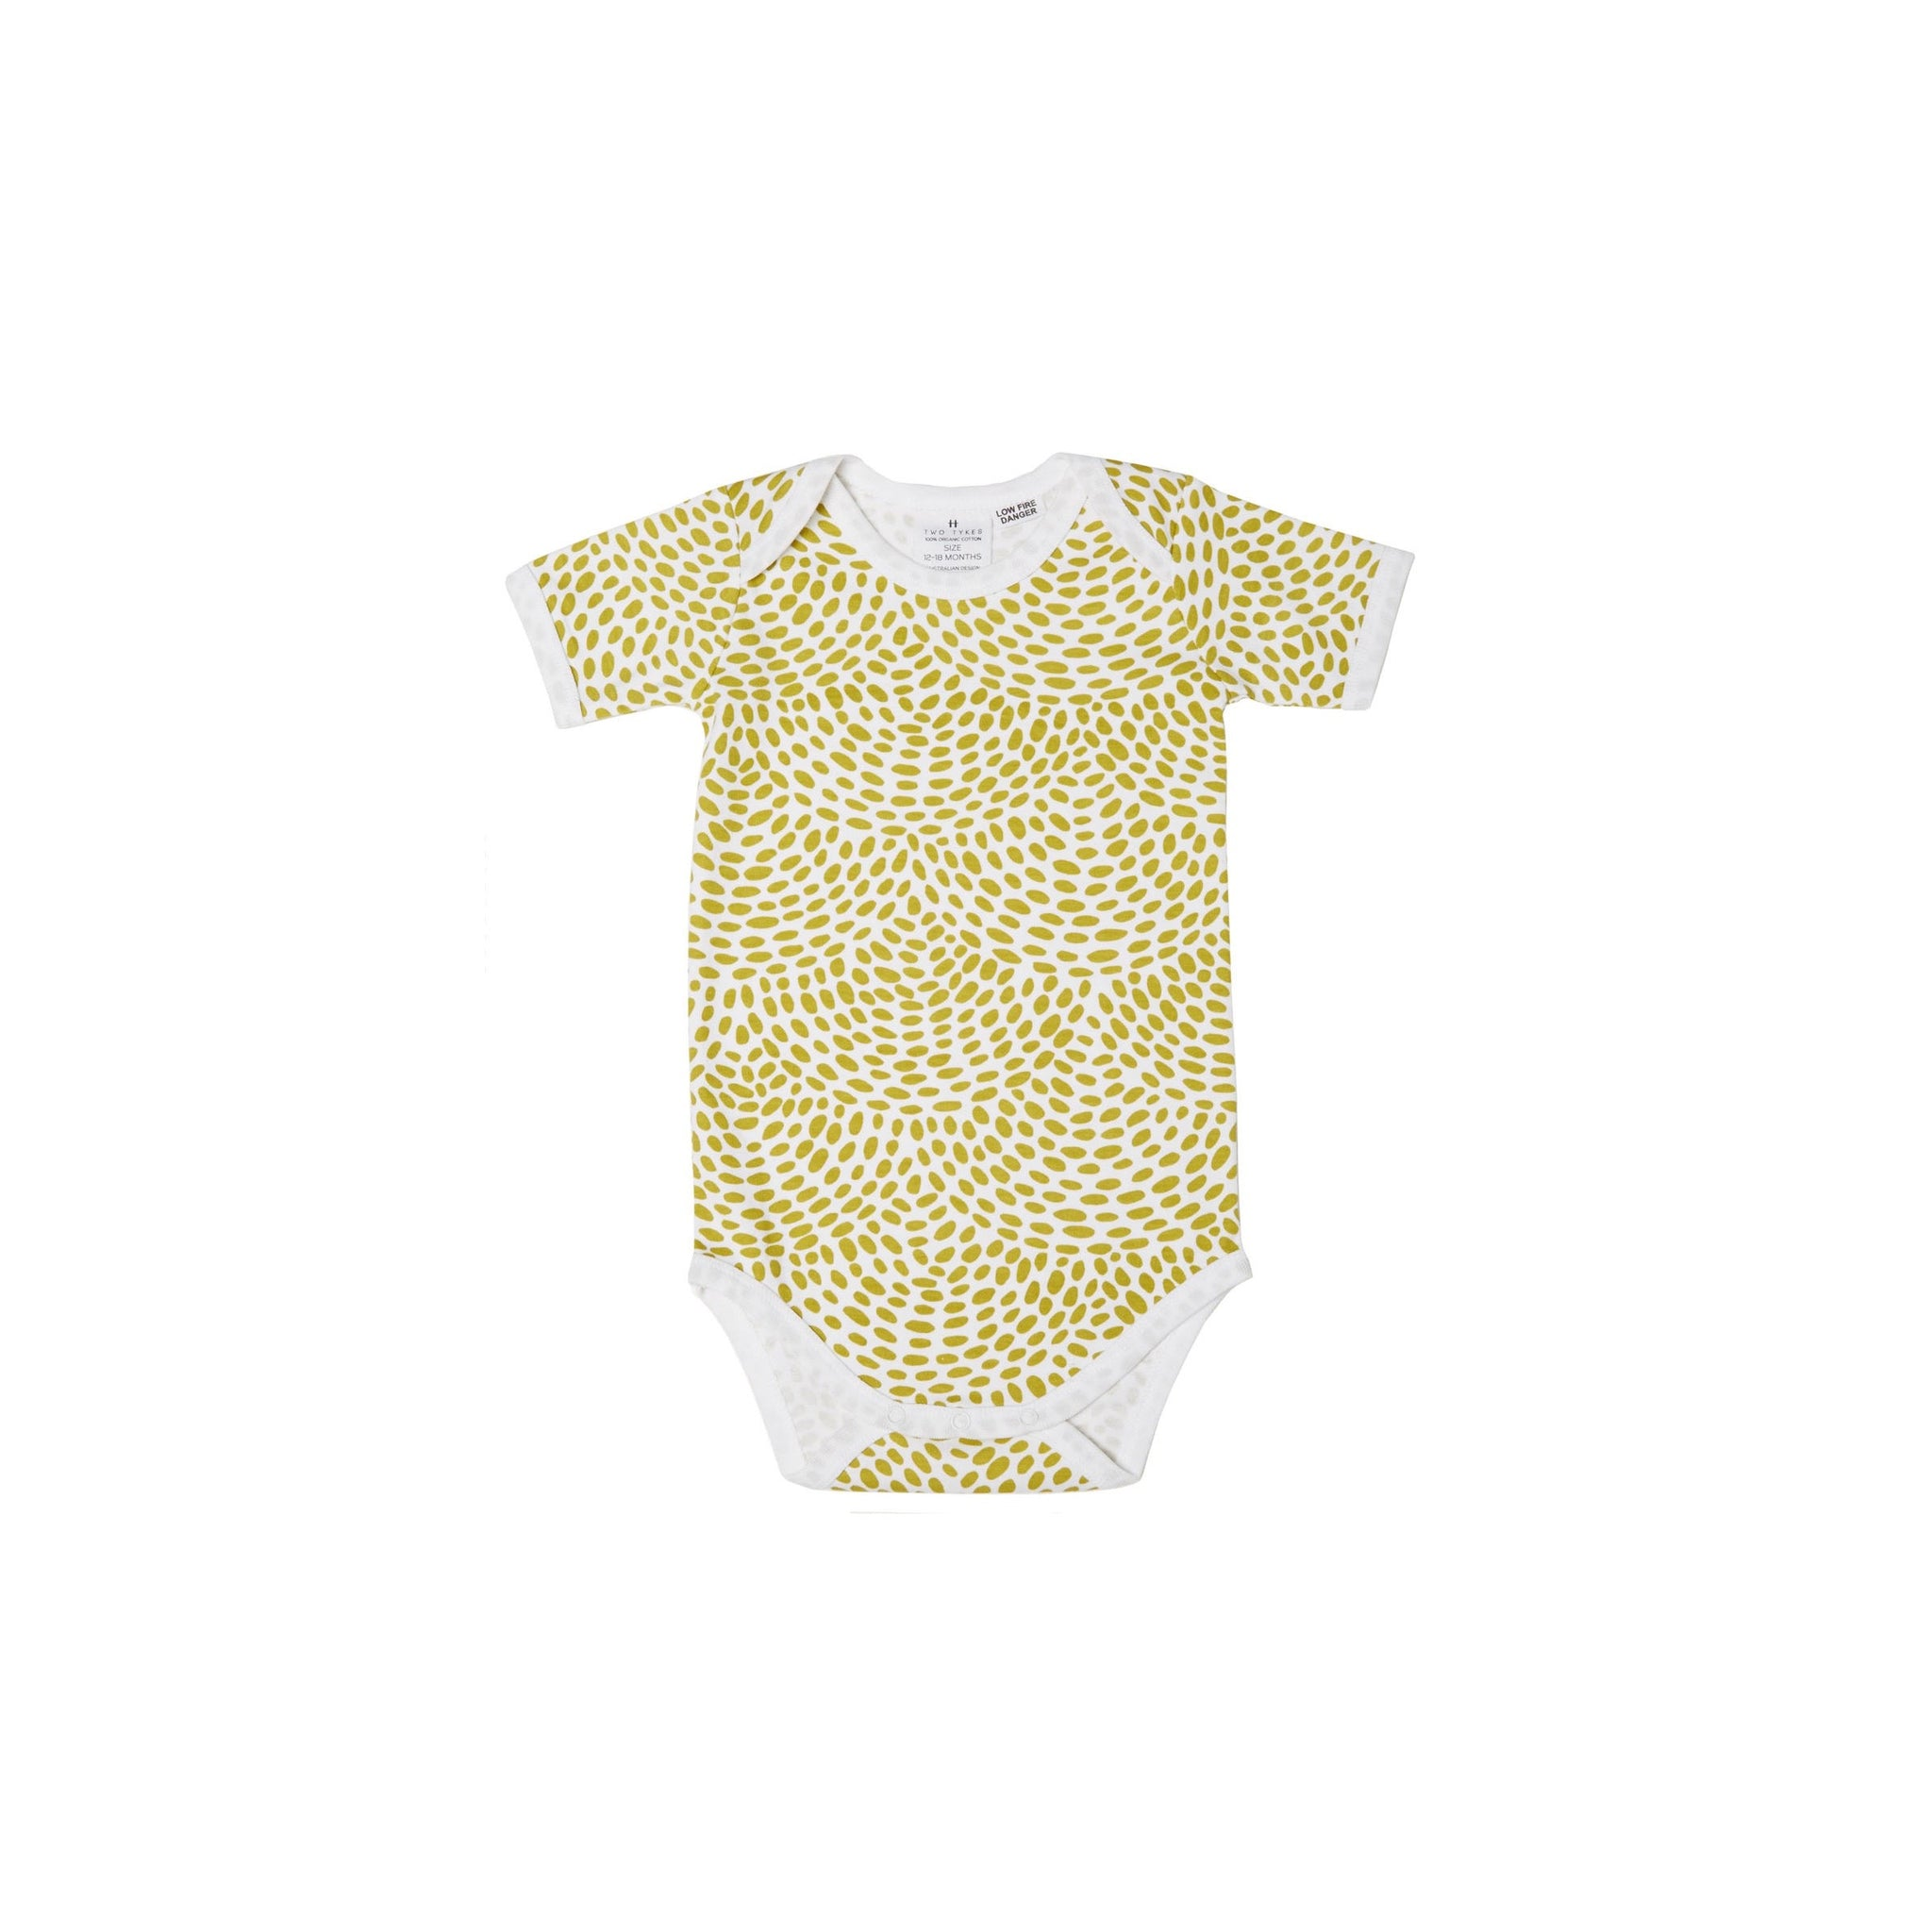 Moss short sleeve bodysuit